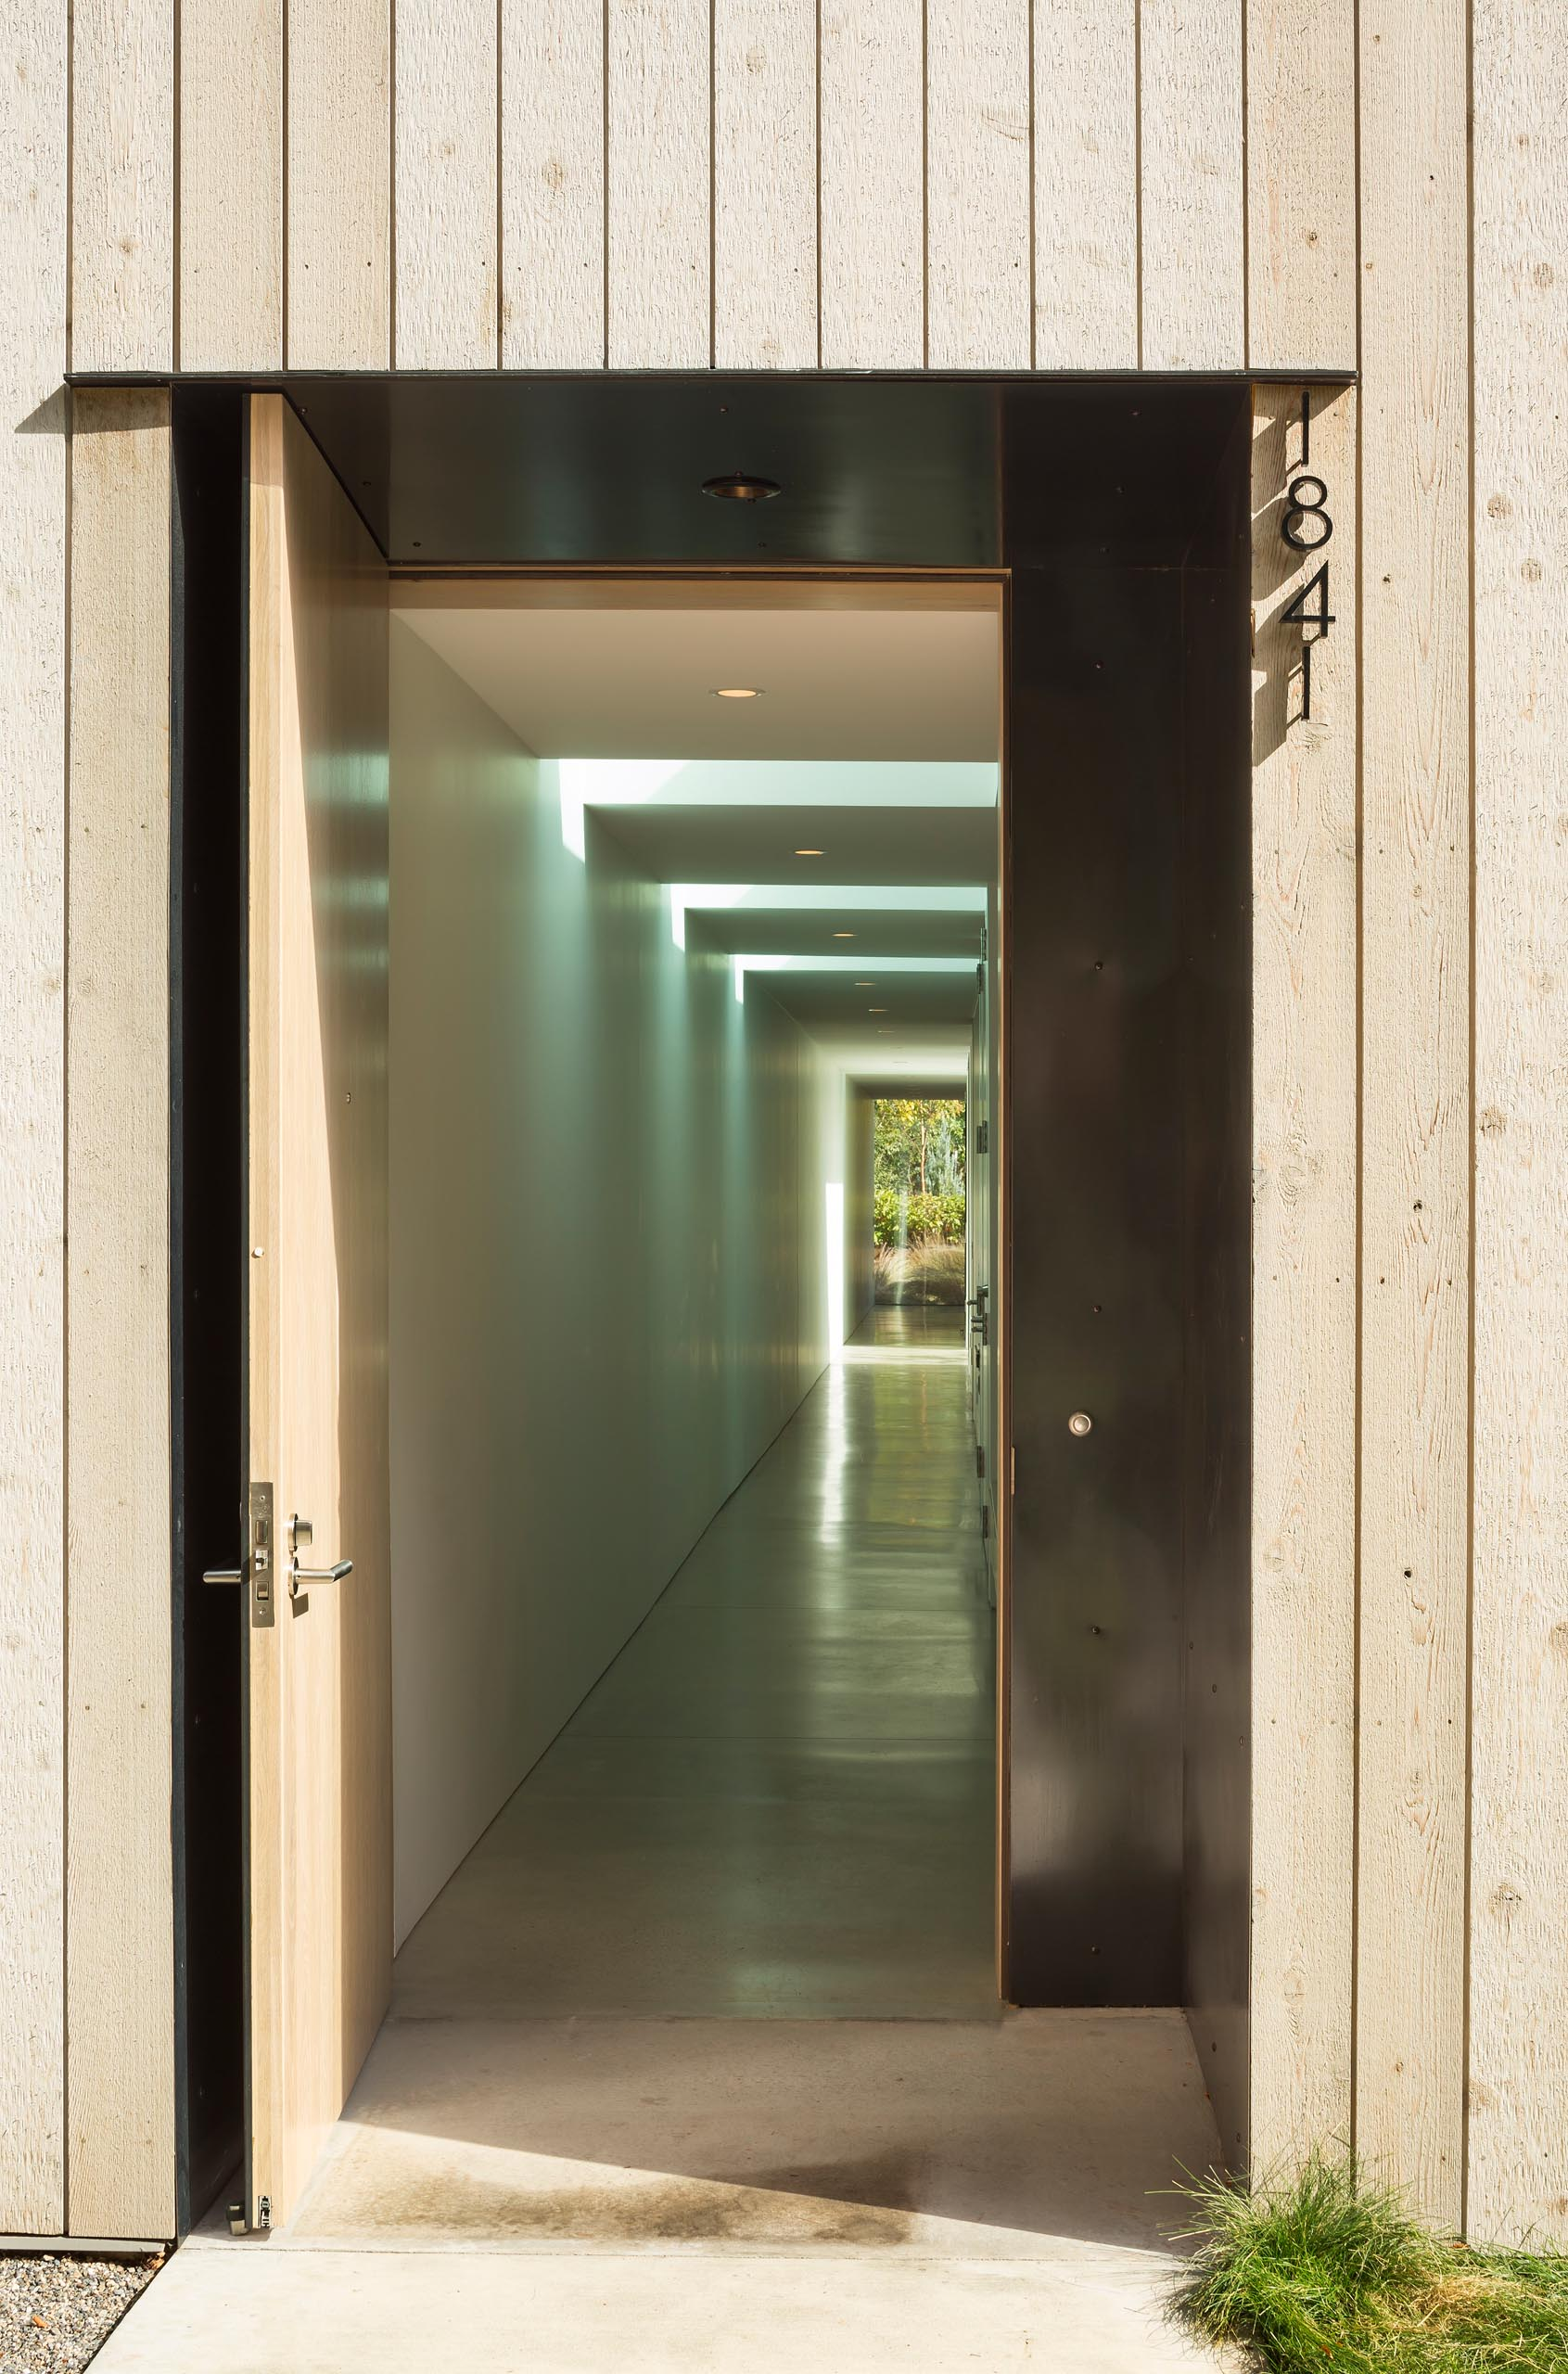 A modern cedar clad home with a black front door and long hallway.